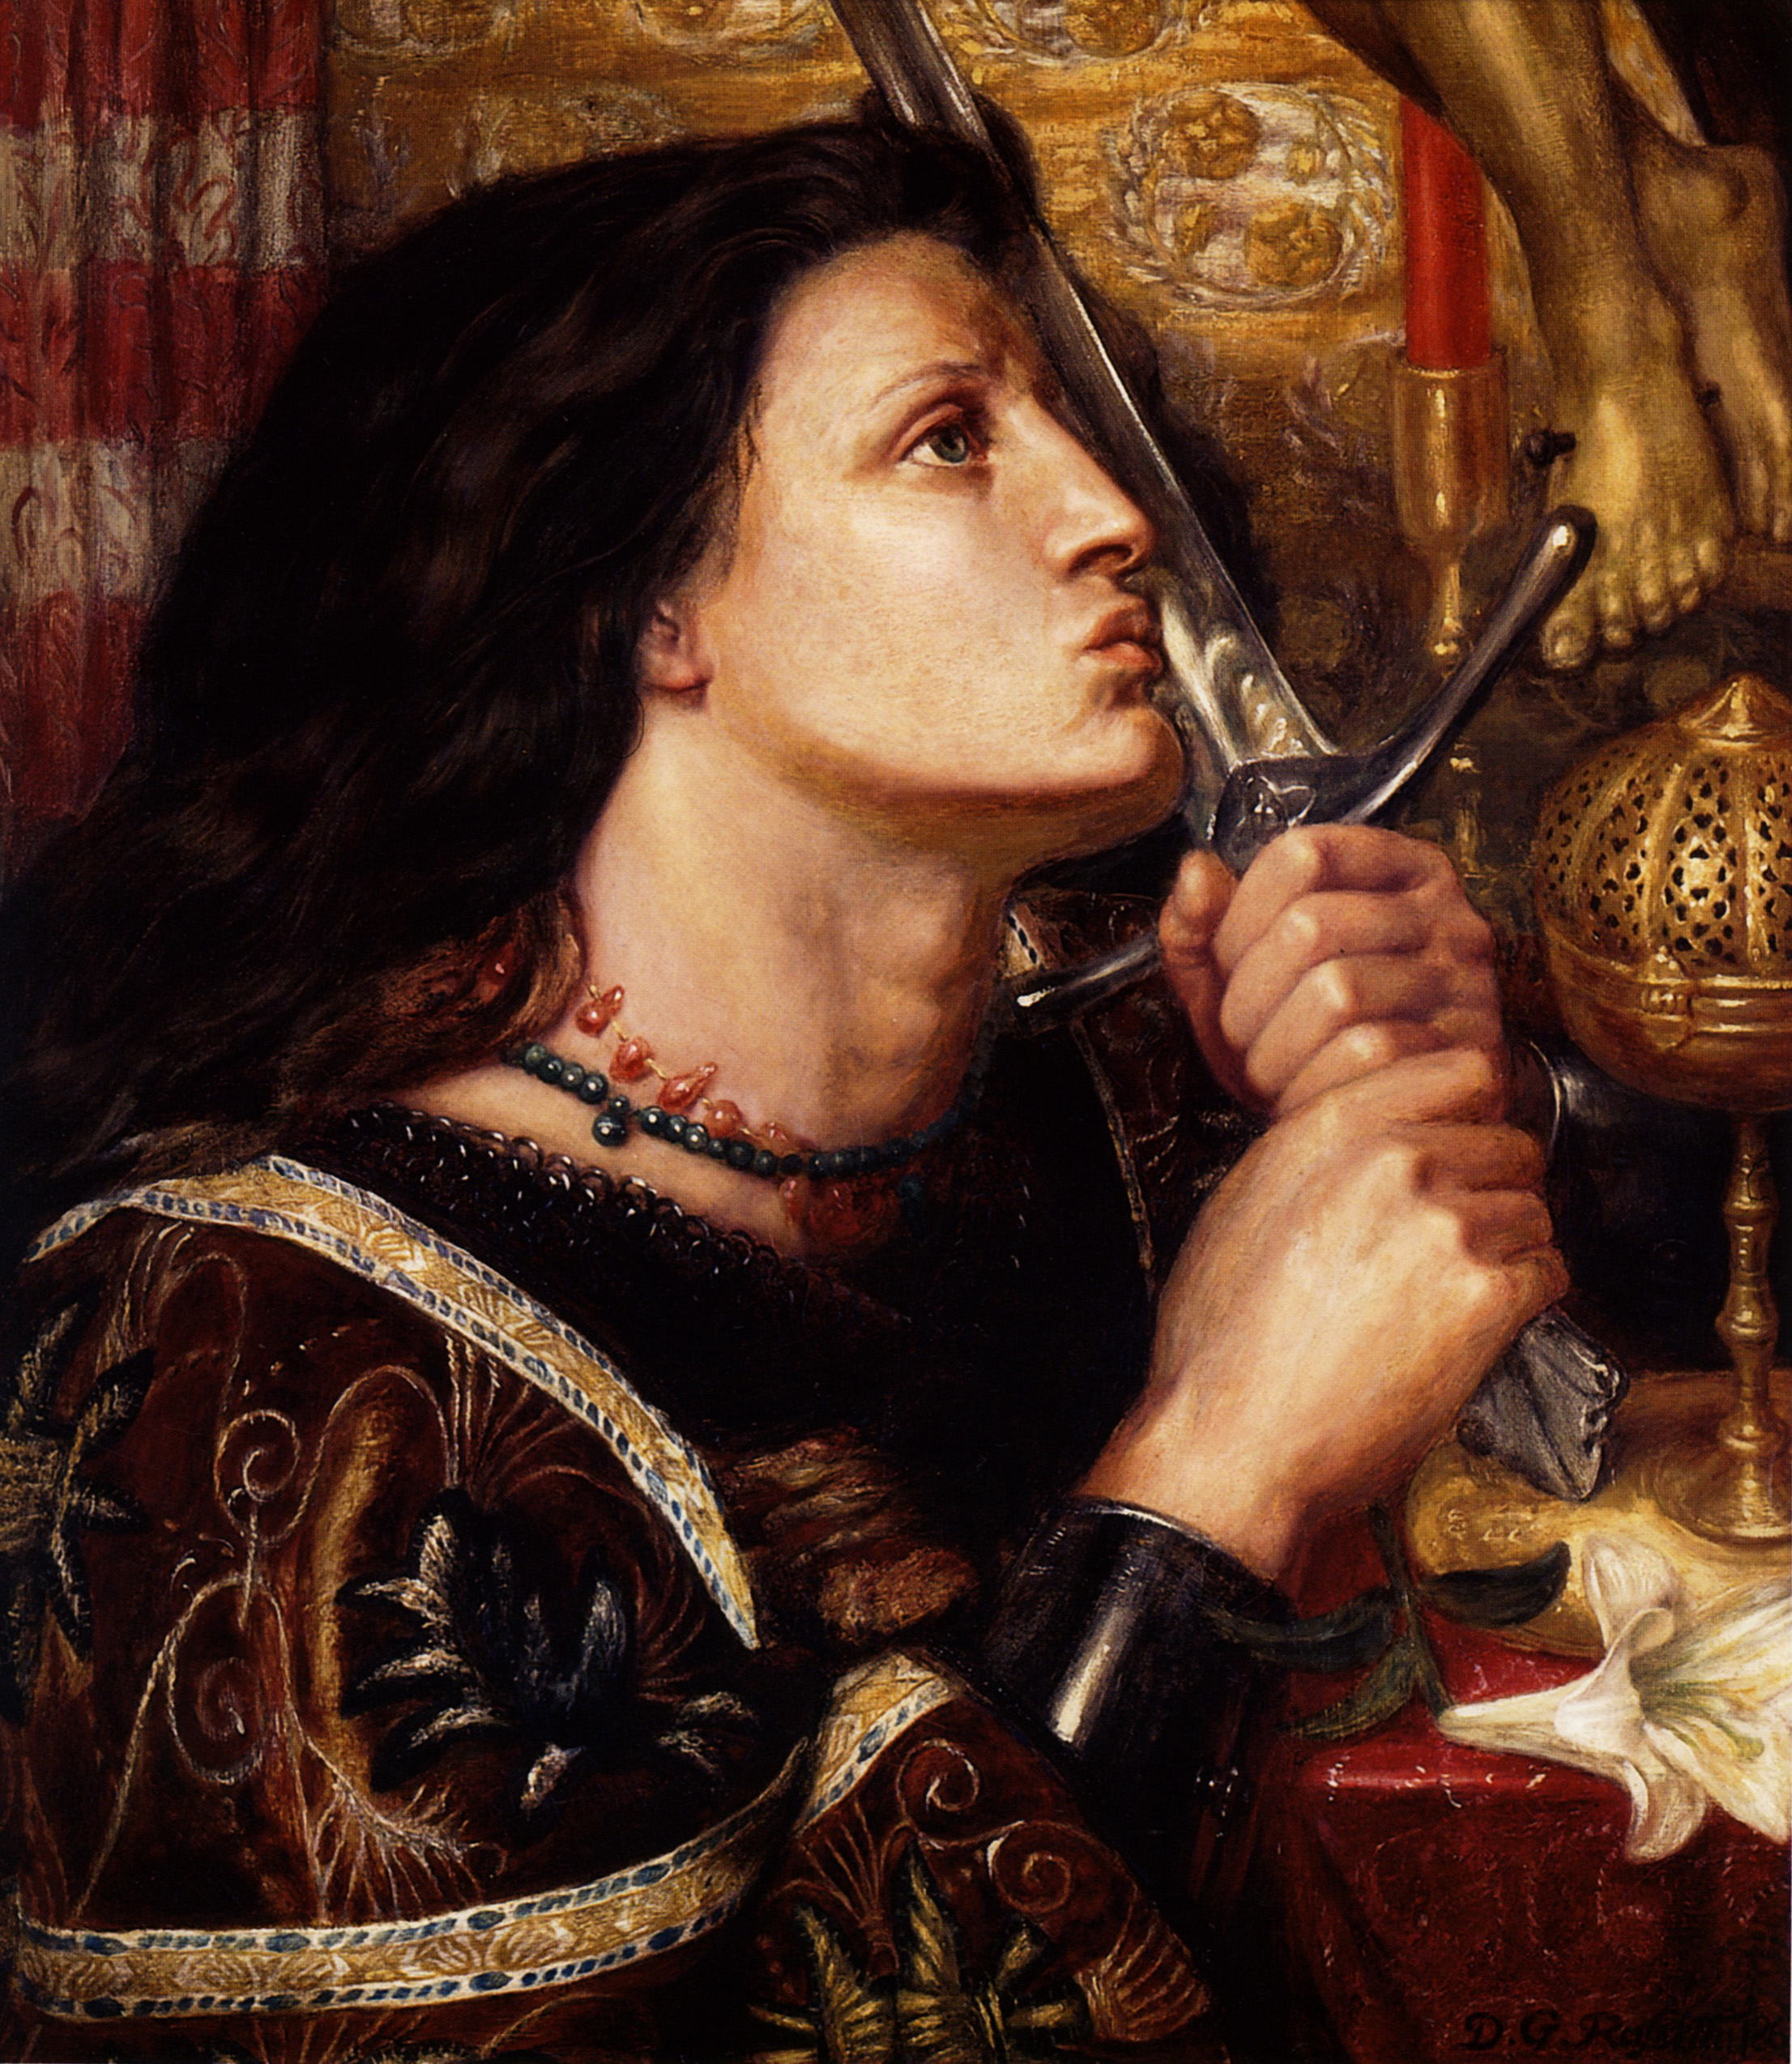 joan d arc biography Joan of arc biography joan of arc (1412-1431) is a french heroine and roman catholic saint born in obscurity to a peasant family, she travelled to the uncrowned dauphin of france, advising him to reclaim his french throne and defeat the english.